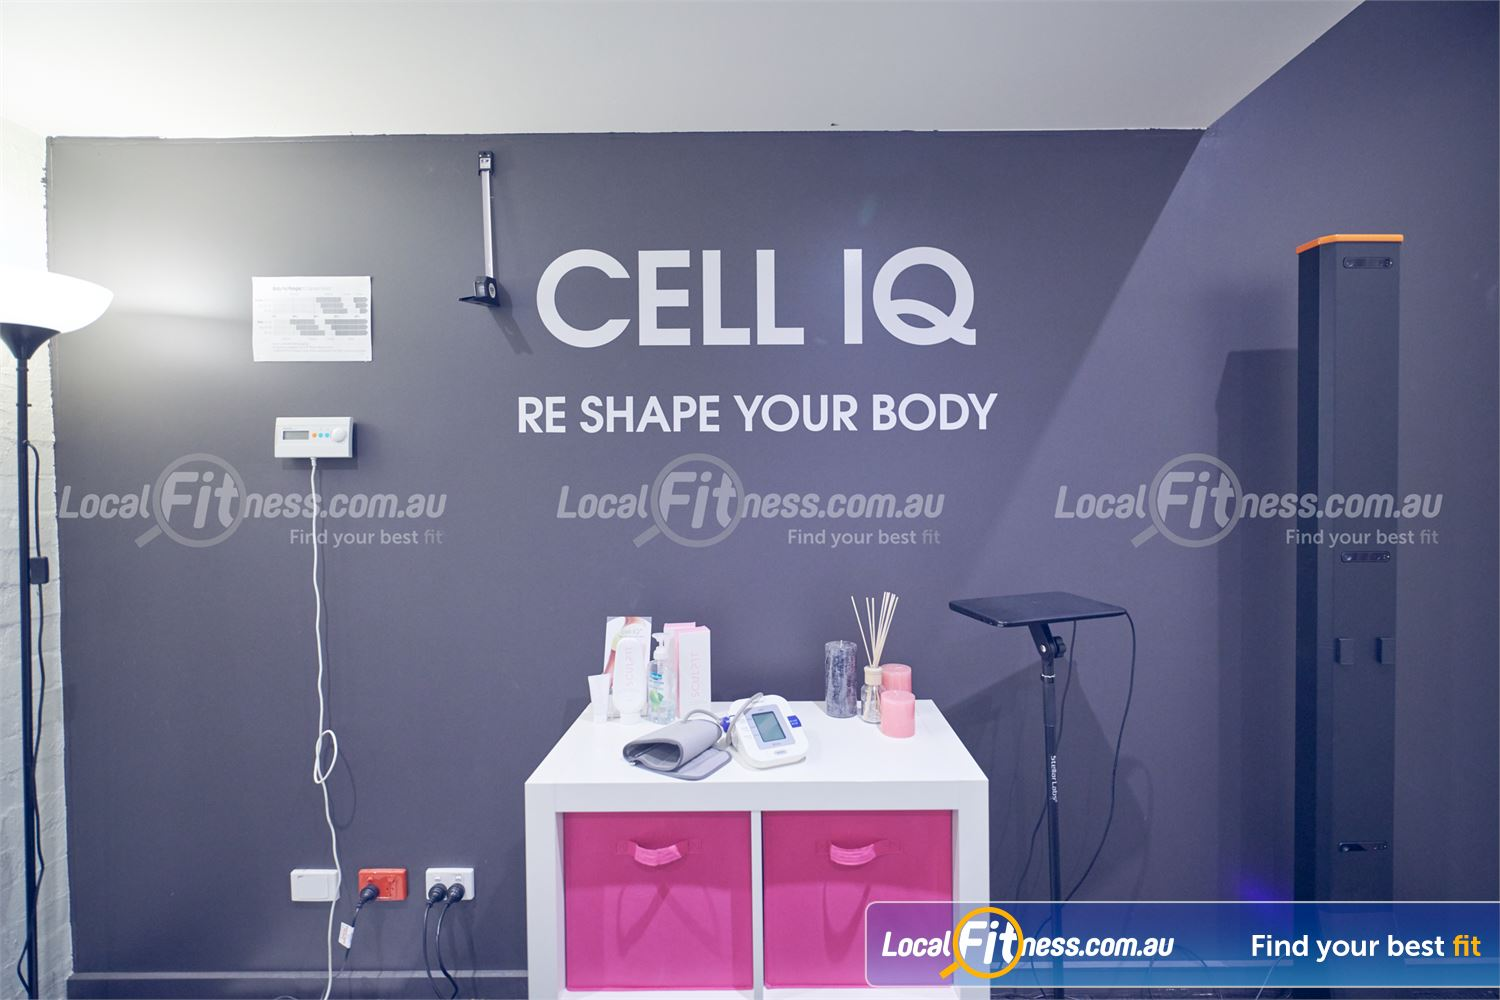 Fernwood Fitness Bulleen Re-shape your body with revolutionary Cell IQ technology.